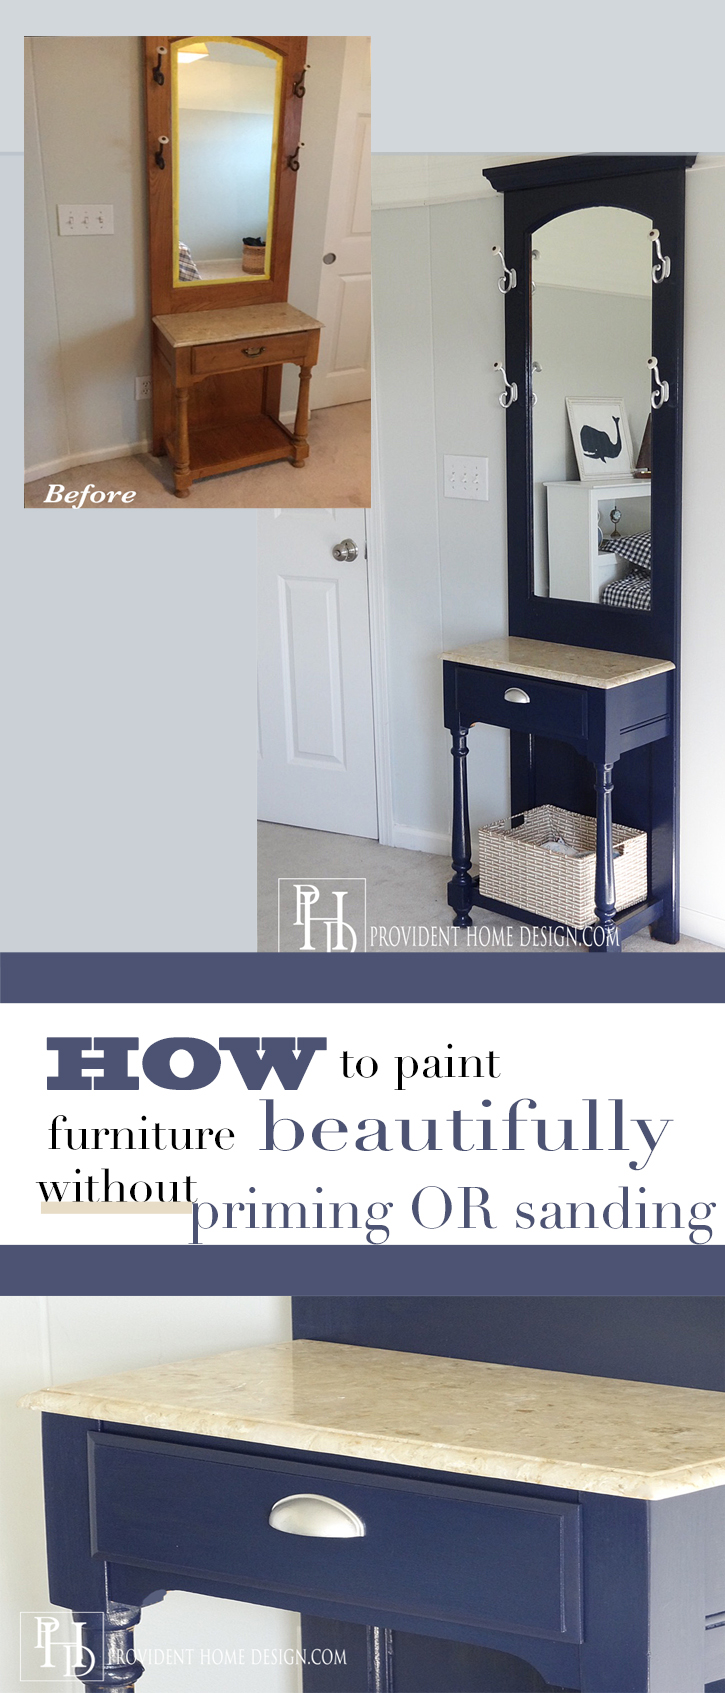 How to Paint Old Wood Furniture to Look Beautiful